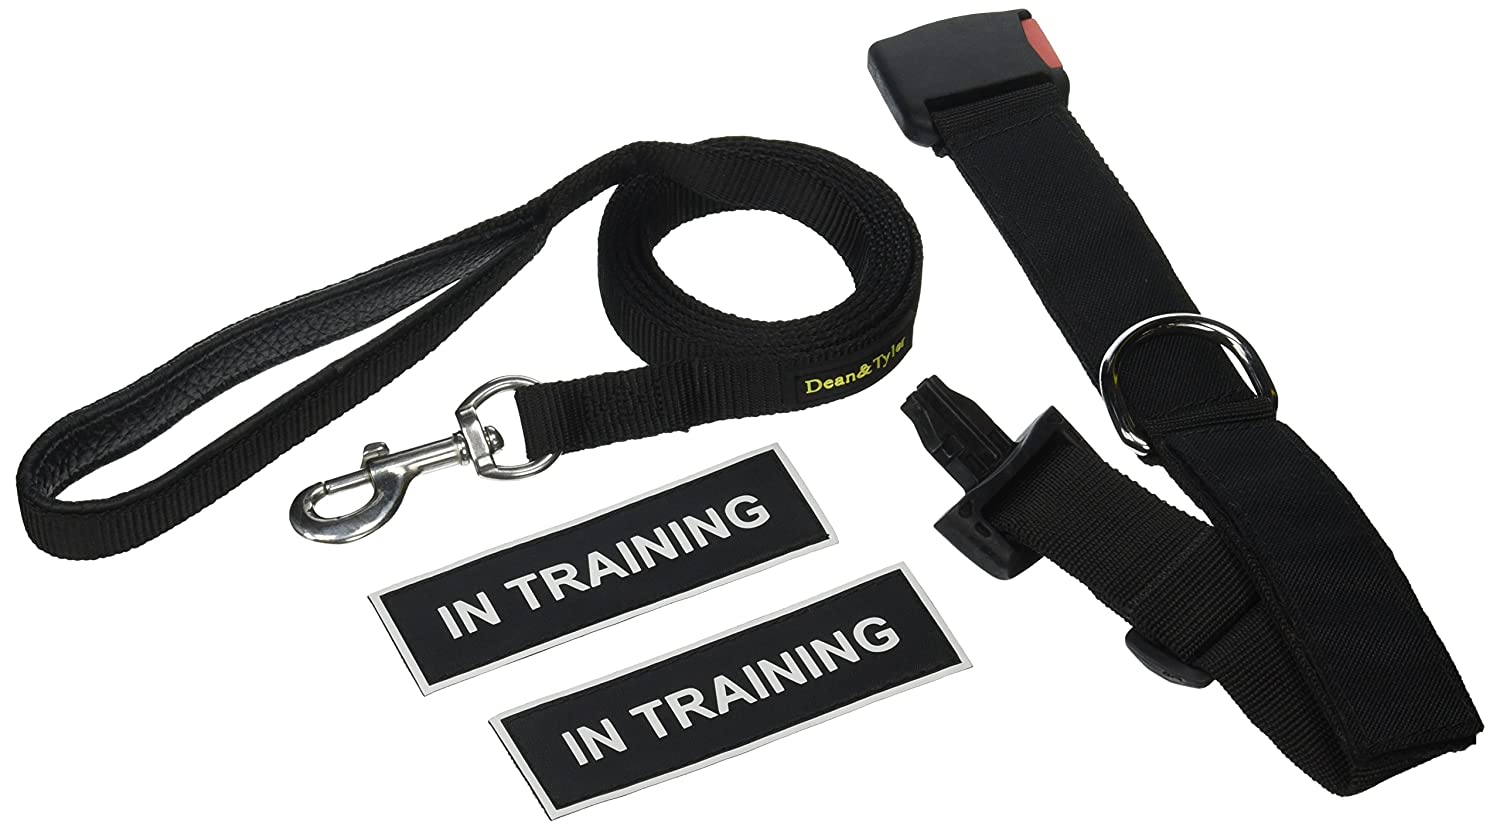 Dean & Tyler in Training Patch Small Dog Collar with 6-Feet Padded Puppy Leash, Black